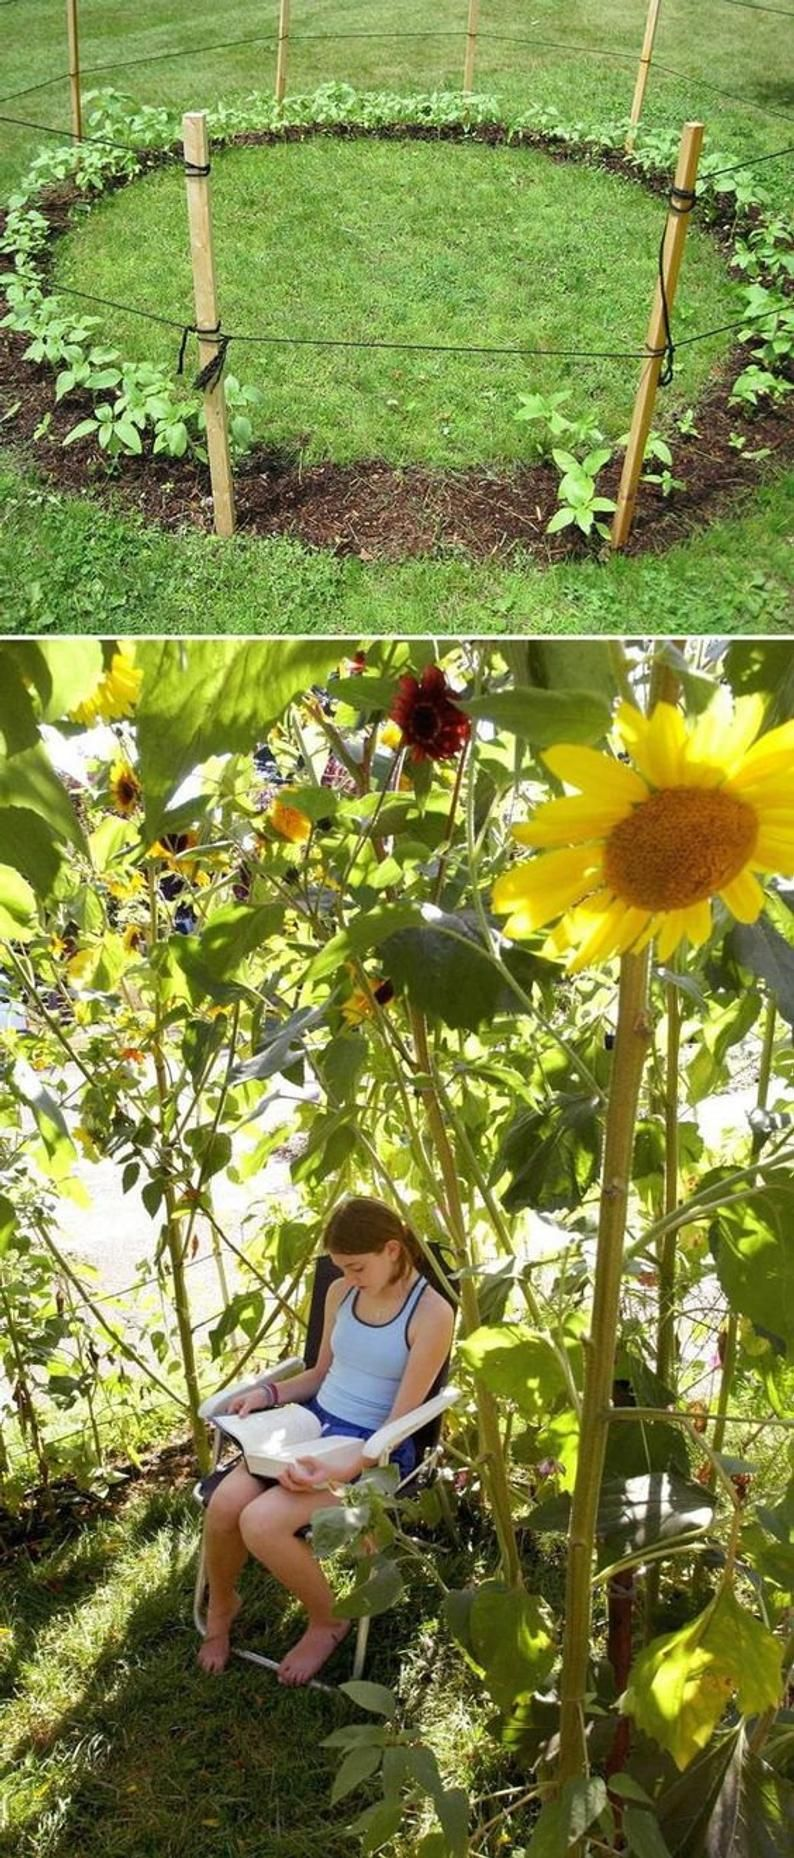 SUNFOREST SUNFLOWER MIX, Grow Fast Growing Sunflower Forest for Your Children/Grand Children to Play In, They Will Have a Summer Full of Fun